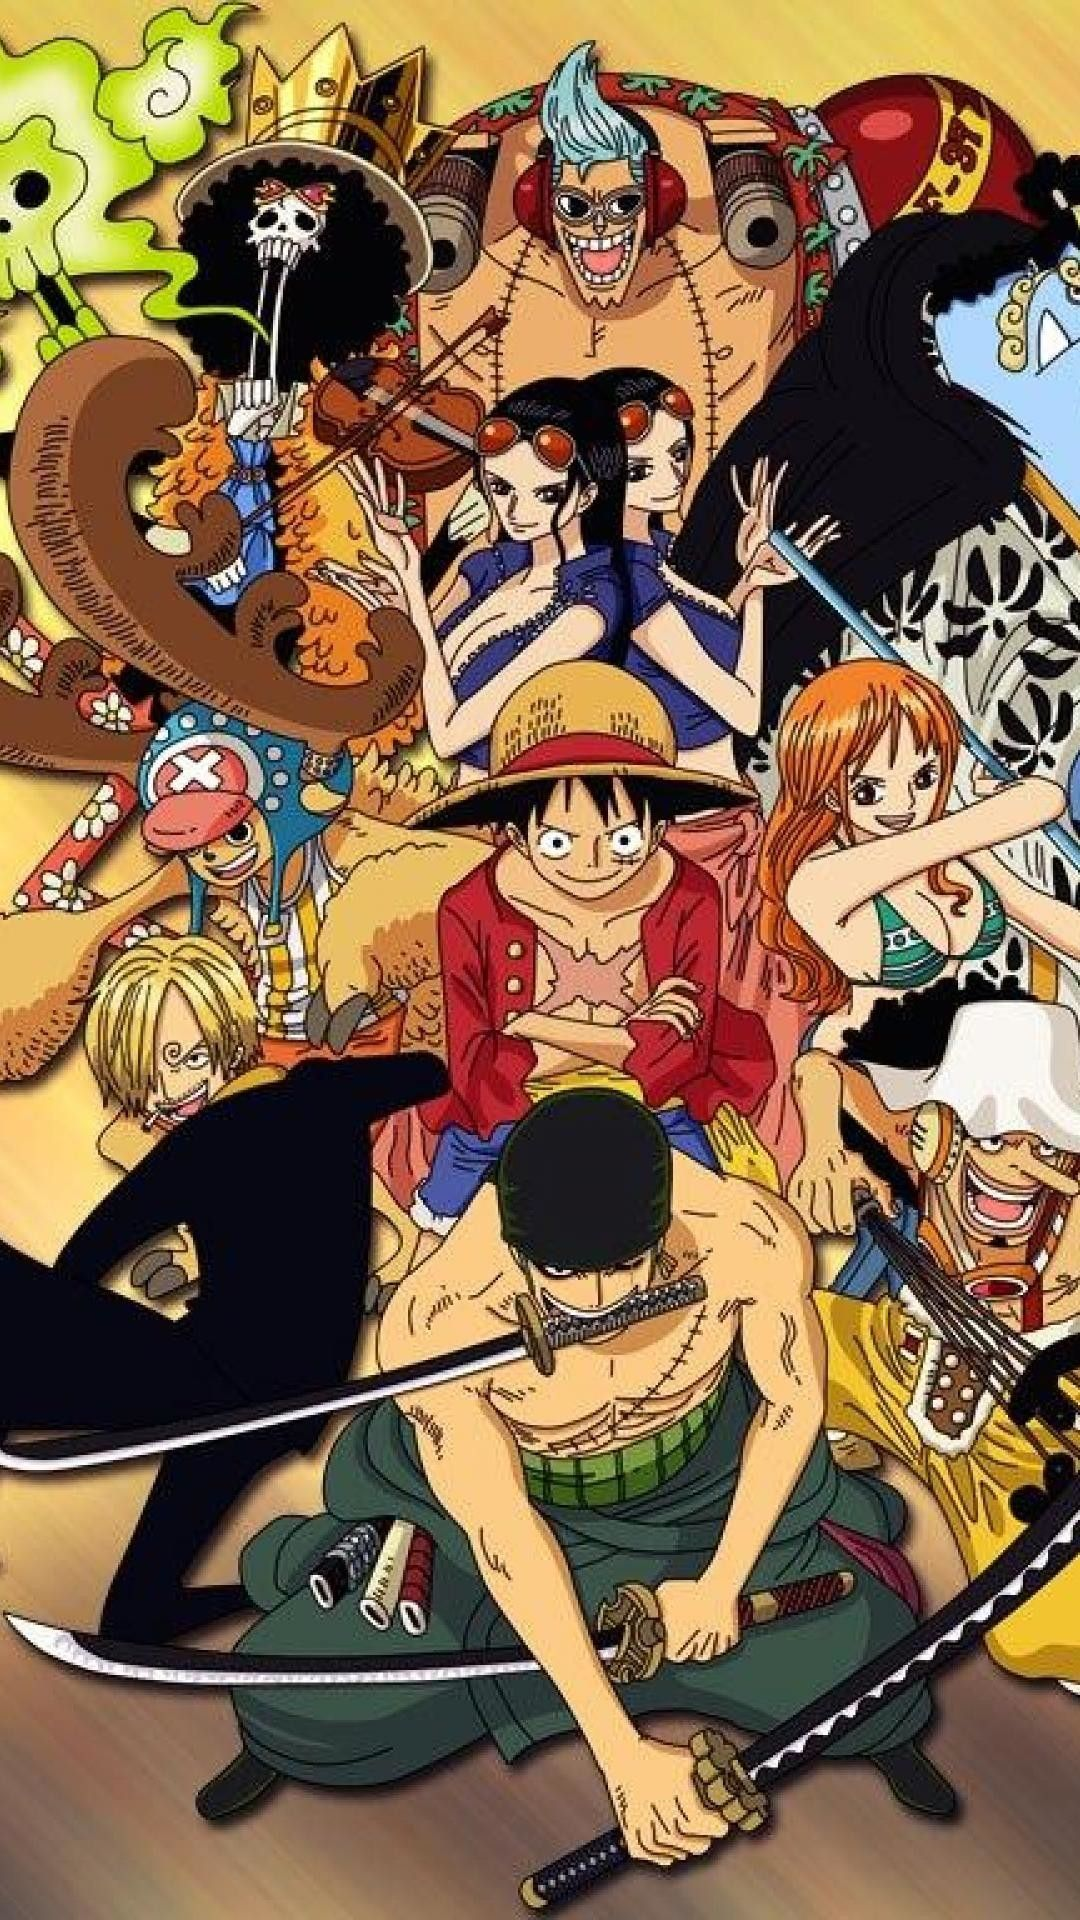 ONE PIECE (con imágenes) Anime one piece, Fondo de anime